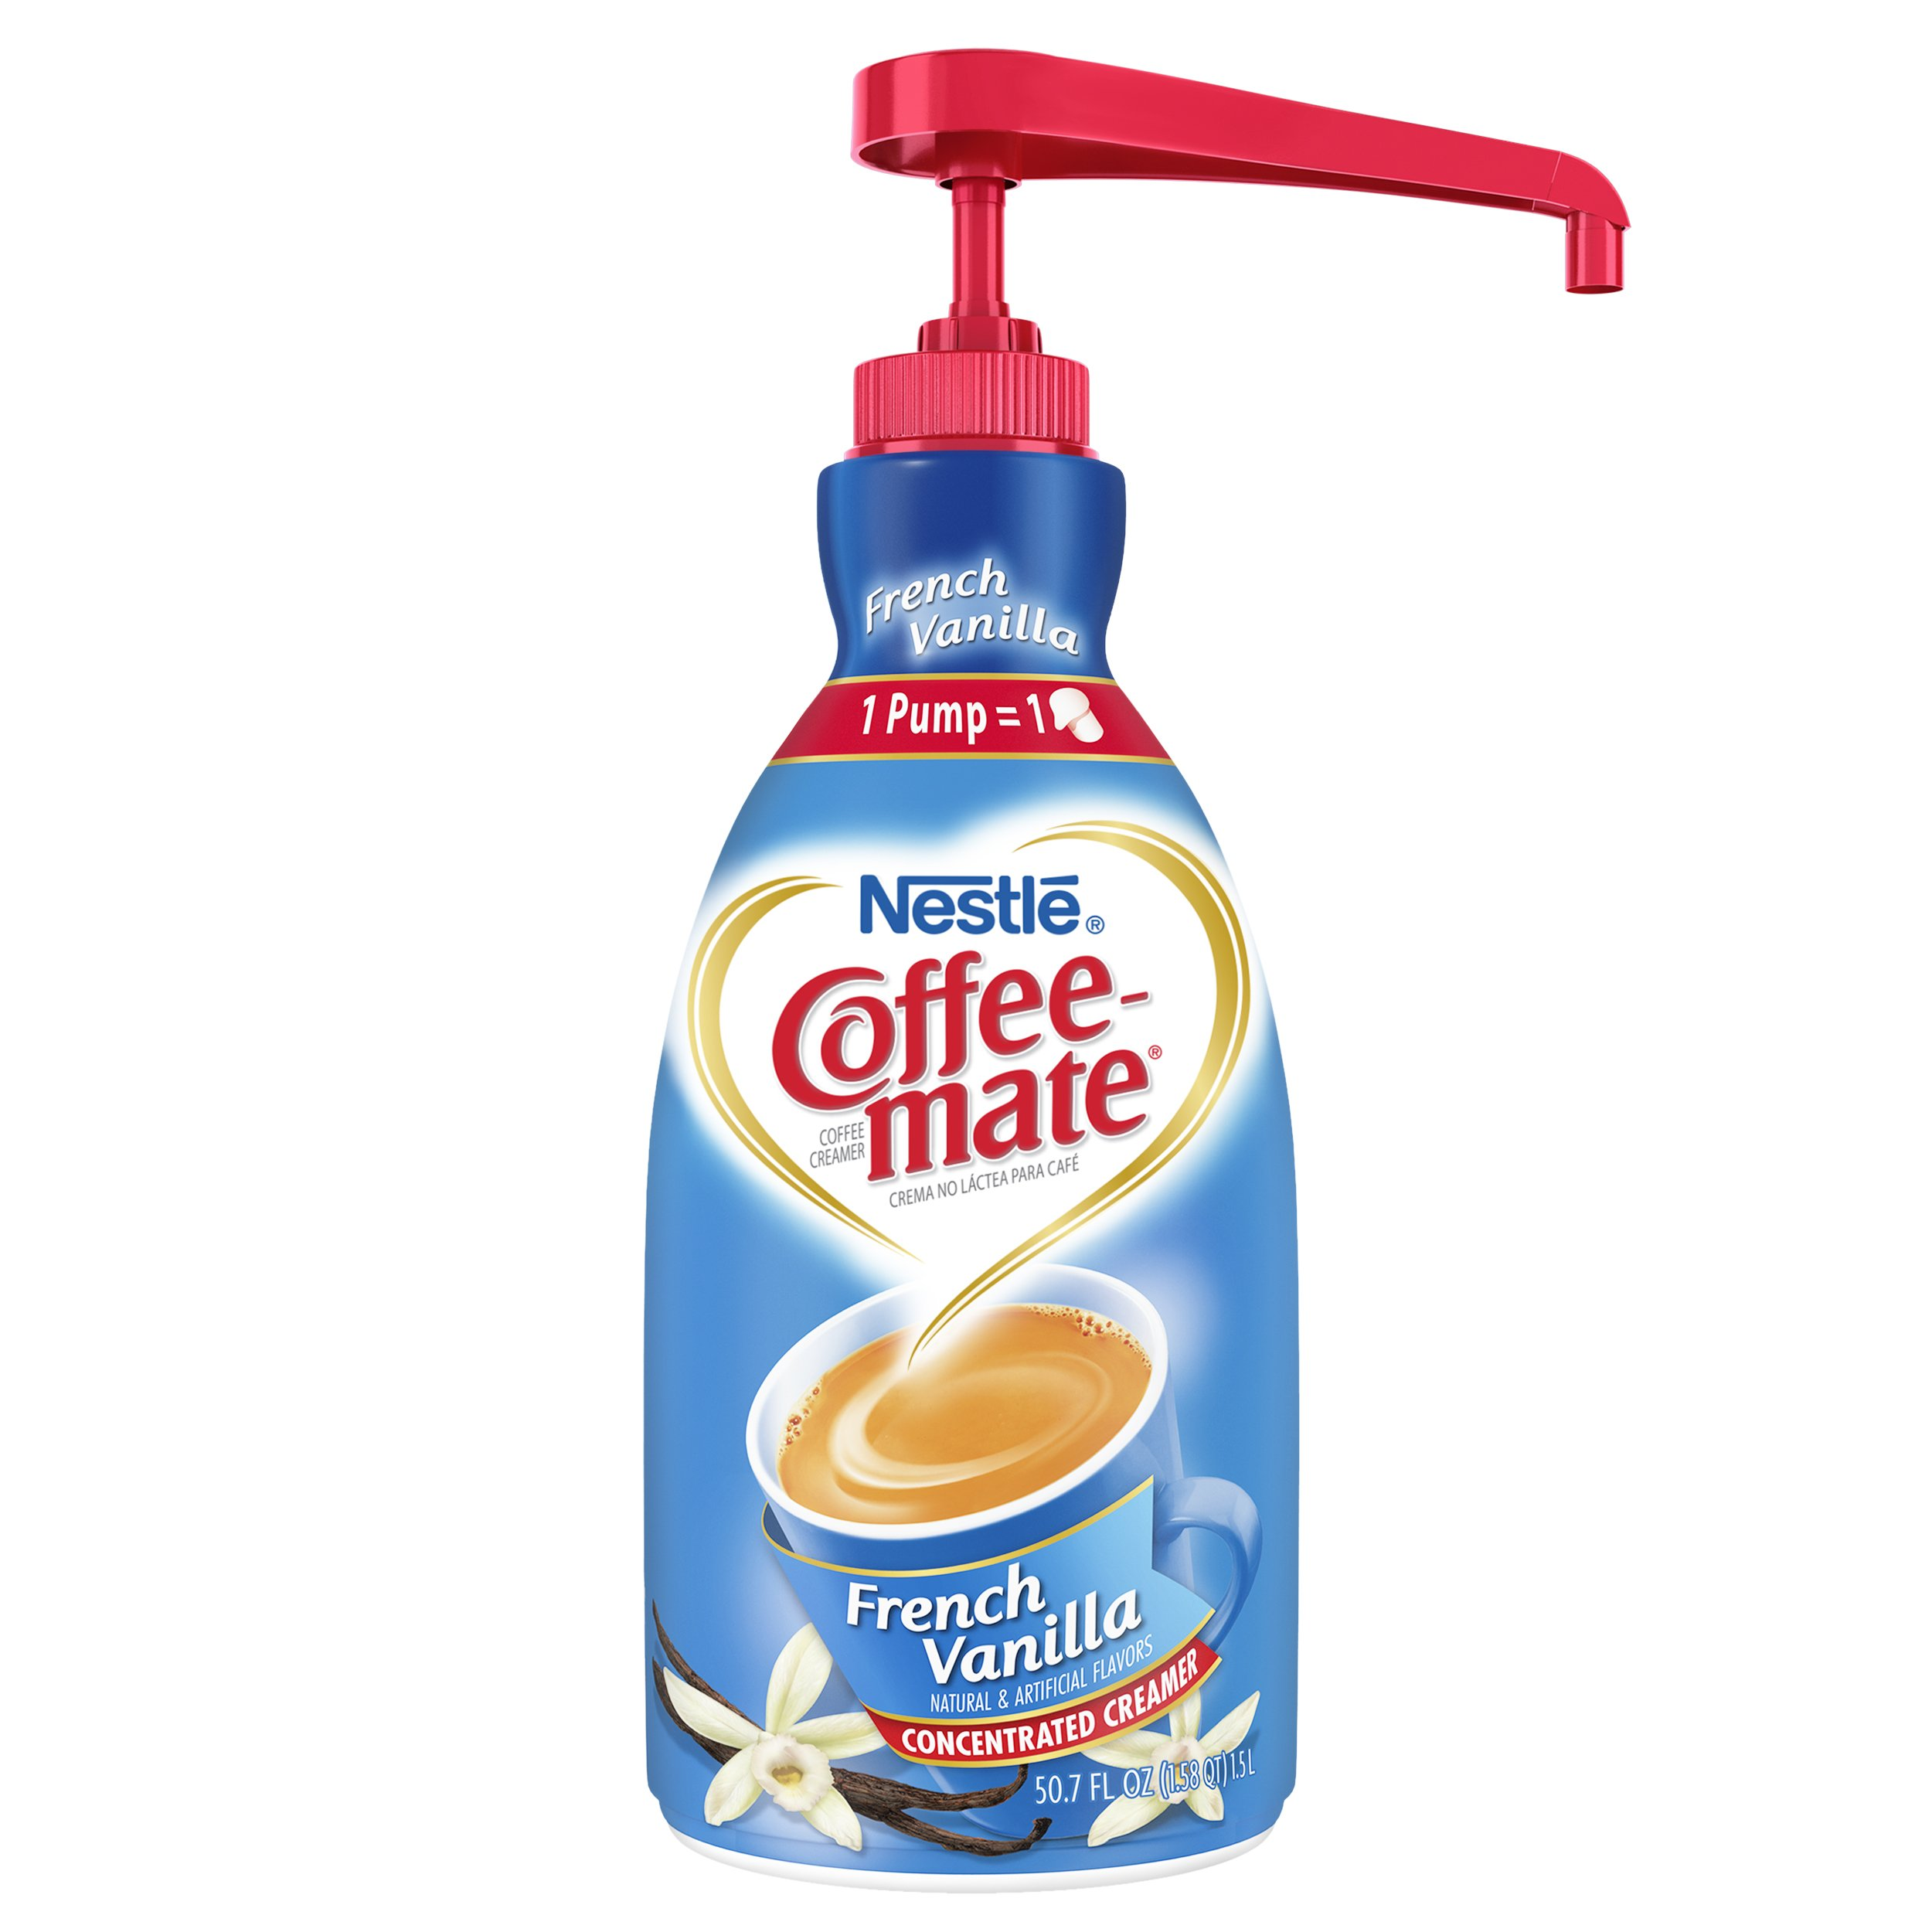 Nestle Coffee-mate Coffee Creamer, French Vanilla,  Liquid Pump Bottle, 50.7 Fl. Oz (Pack of 1) by Nestle Coffee Mate (Image #6)